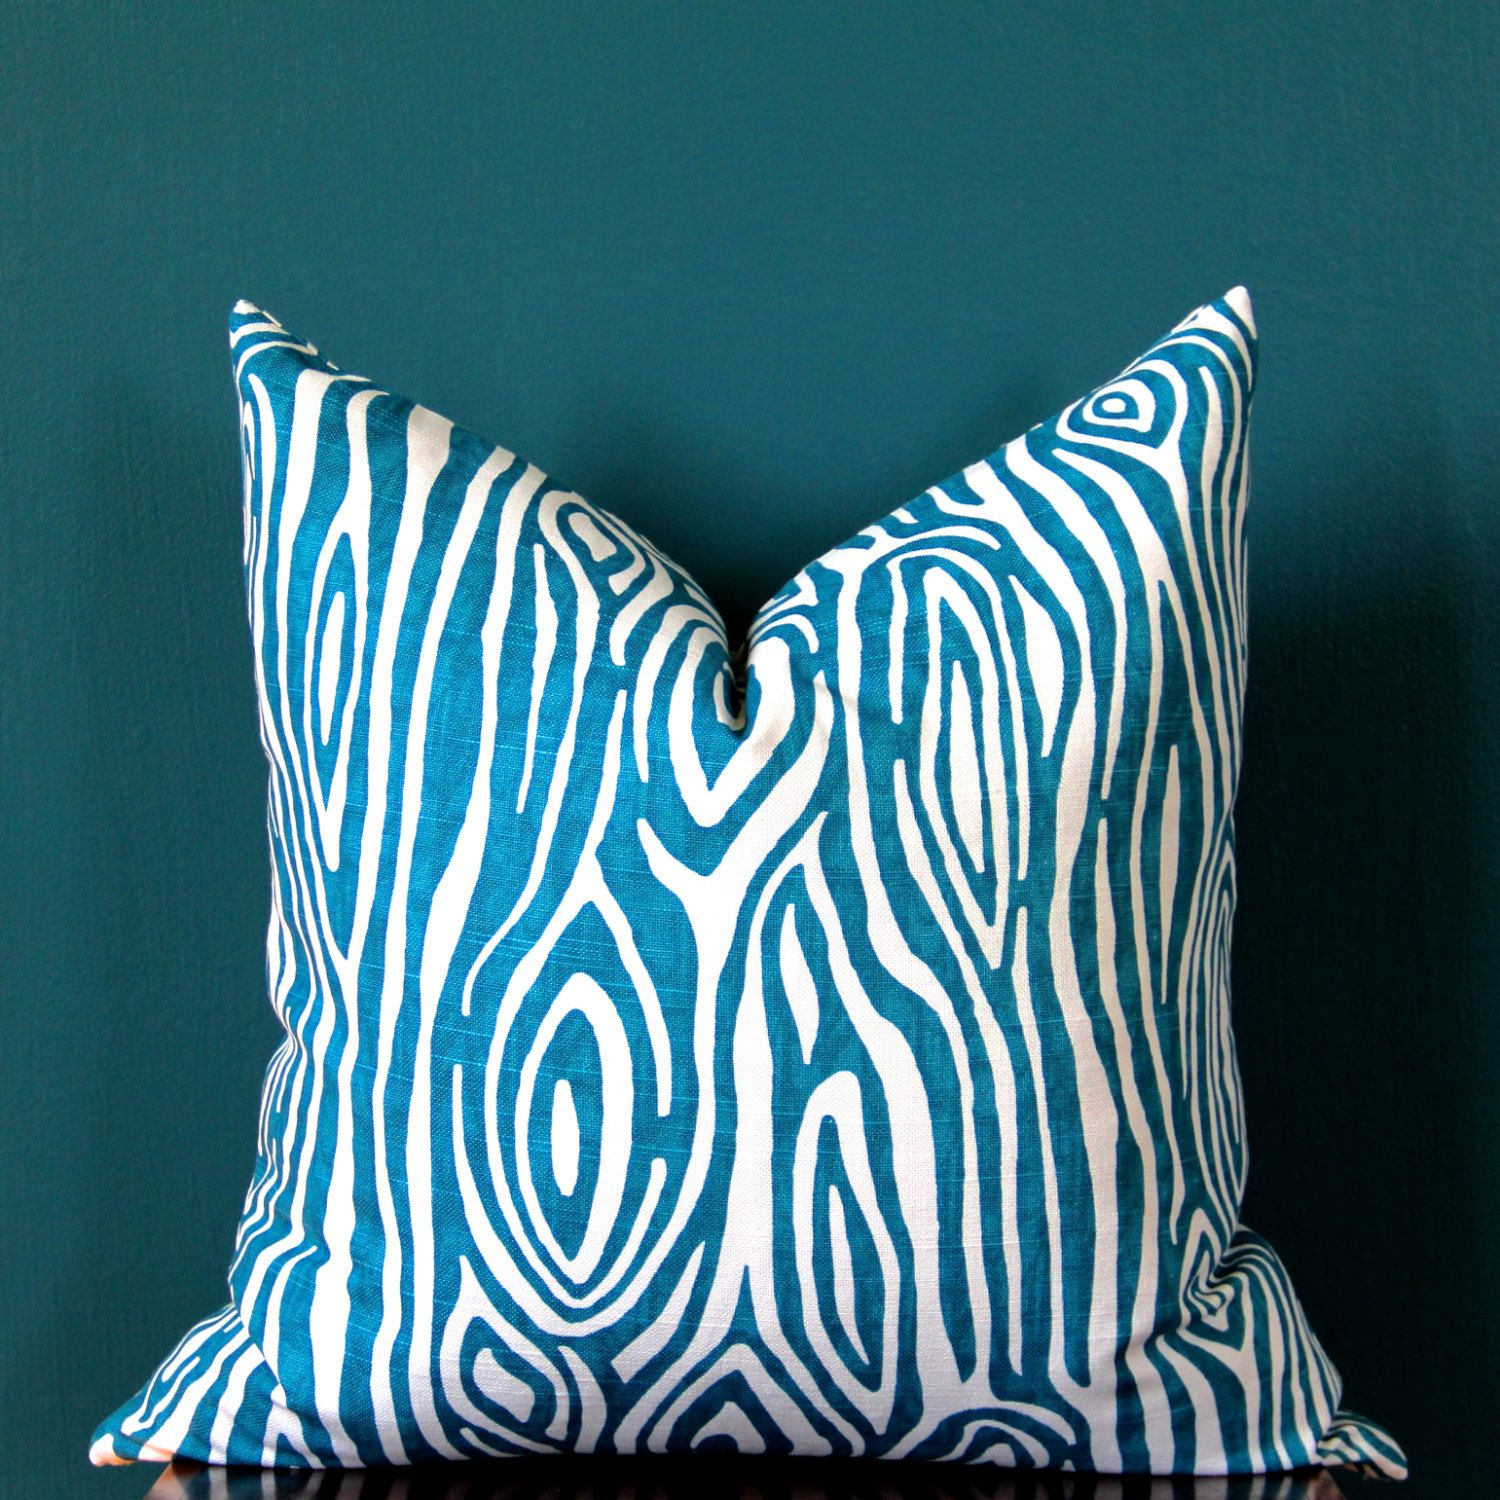 Teal Pillow Cover Turquoise Pillow Cover Abstract Pillow Cover Teal Decor Turquoise Decor Tea Turquoise Pillow Covers Teal Pillows Teal Pillow Covers